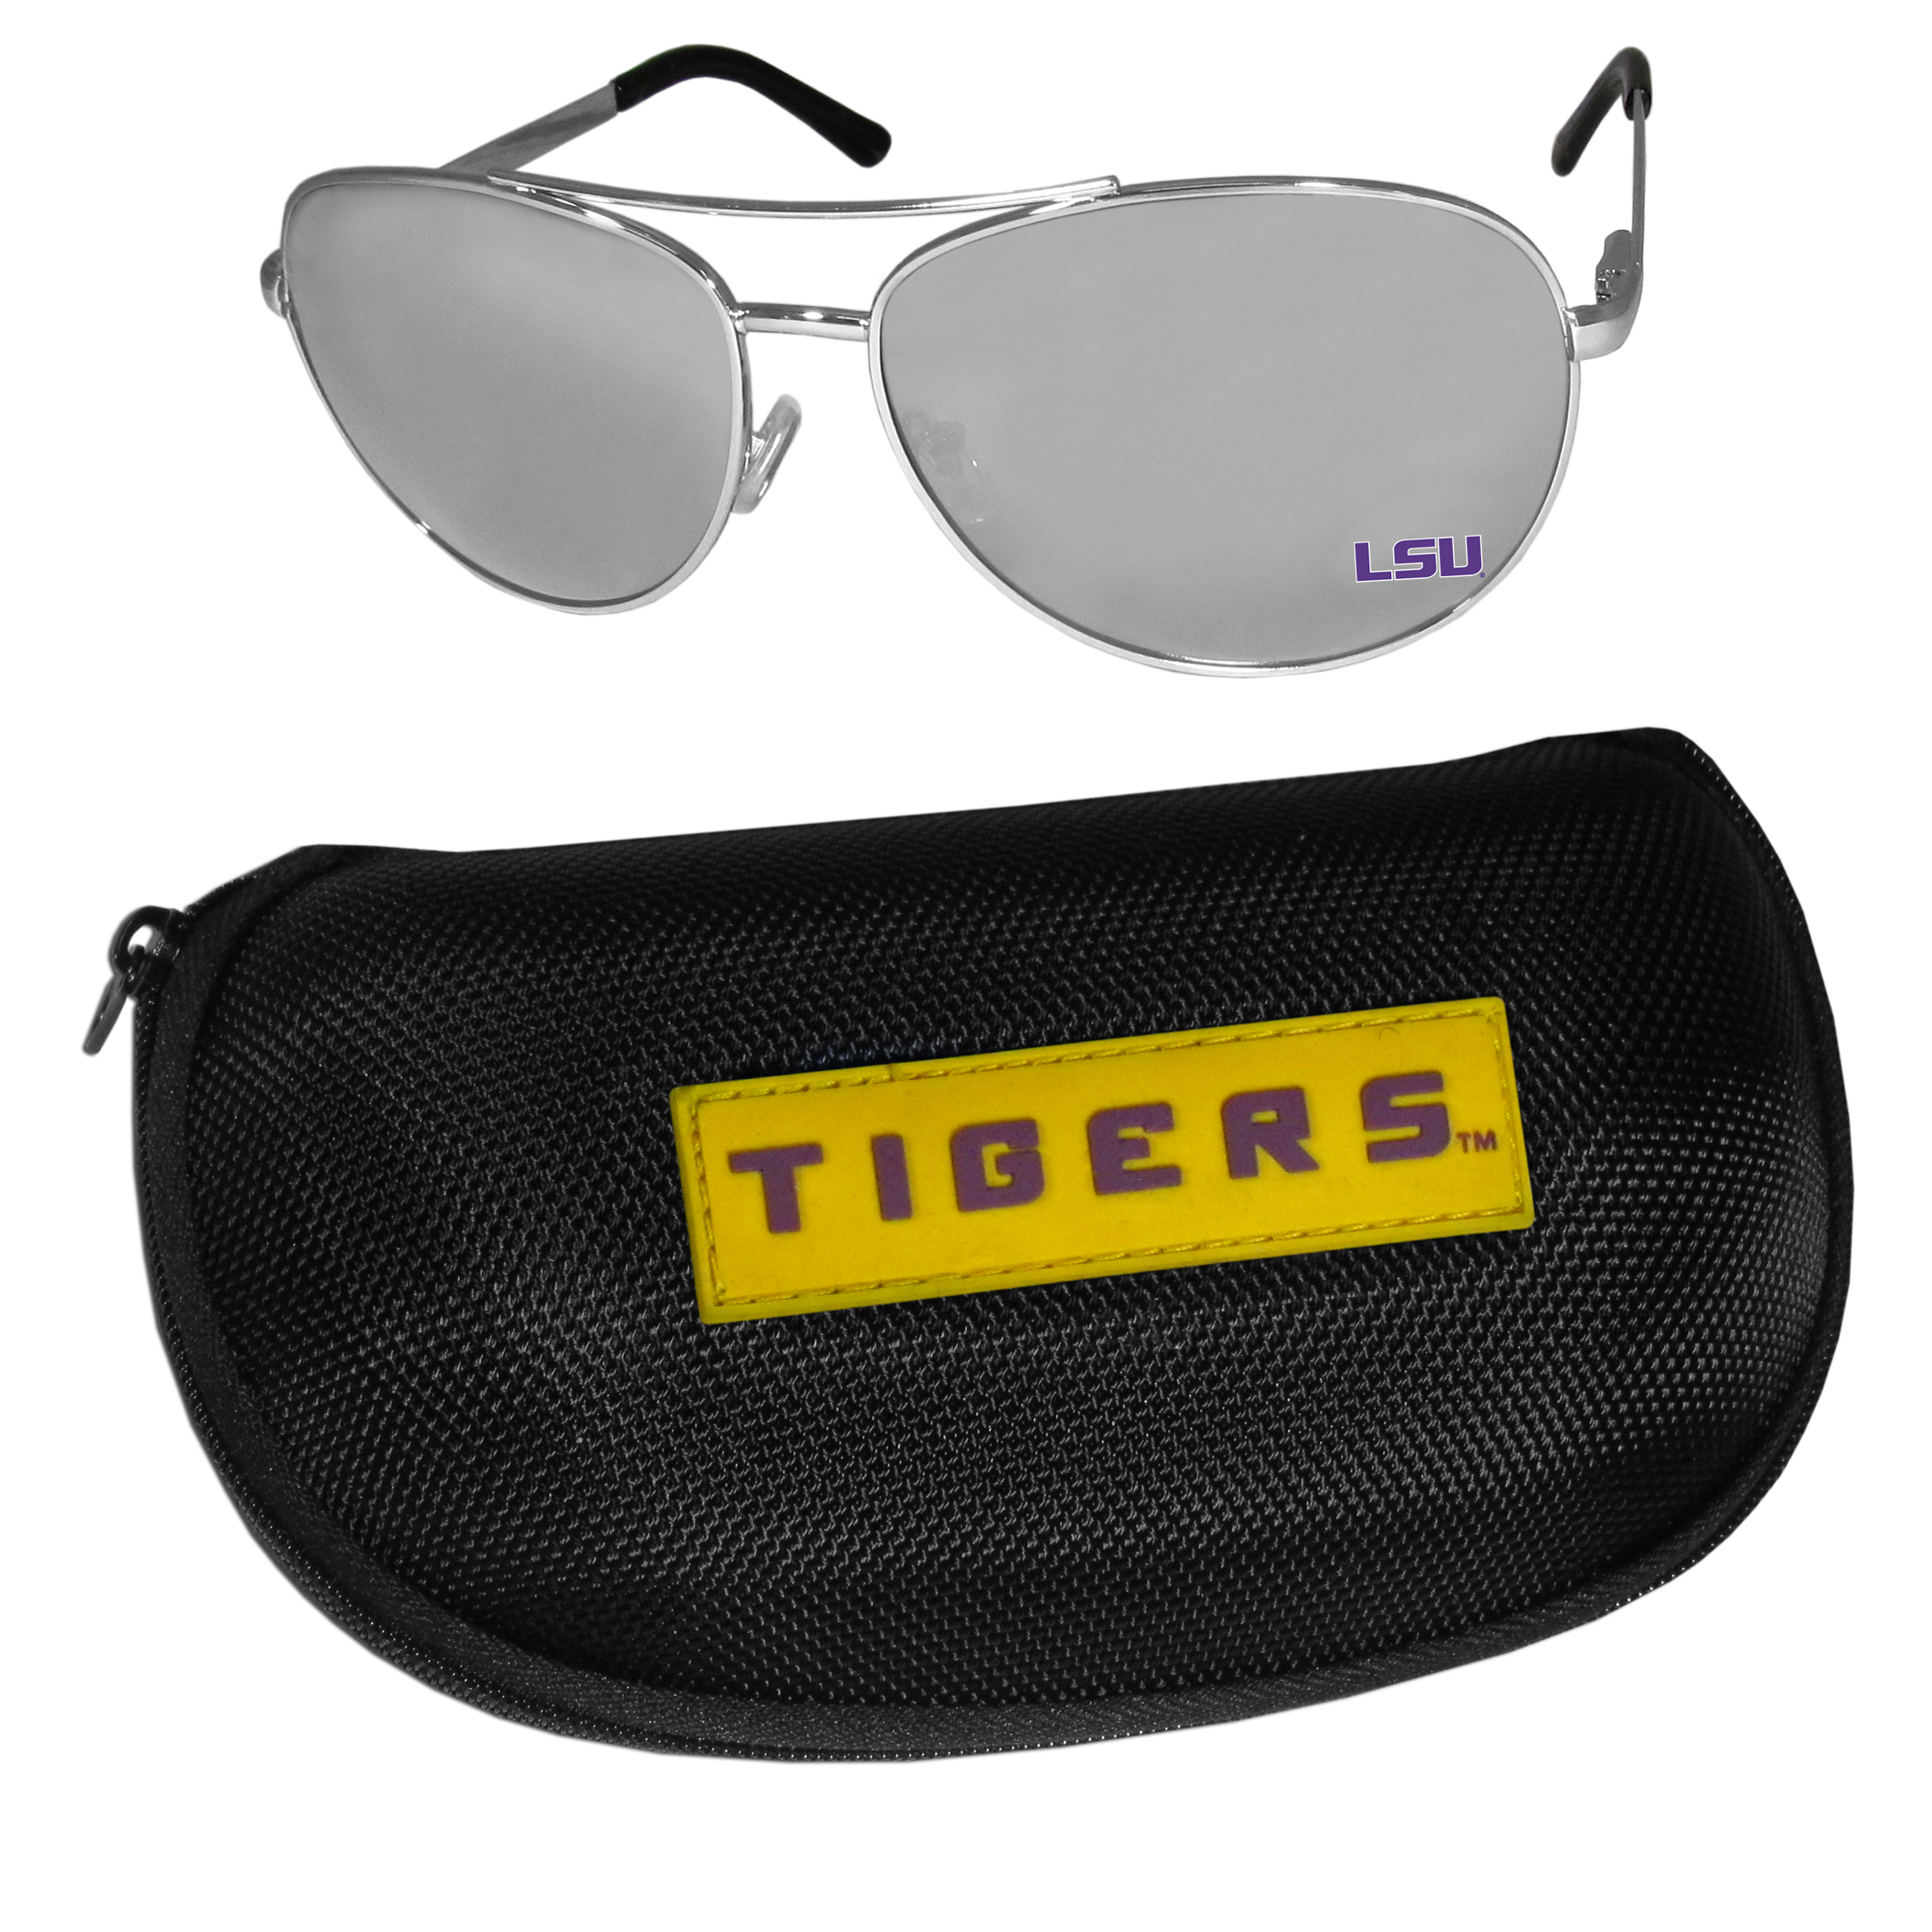 LSU Tigers Aviator Sunglasses and Zippered Carrying Case - Aviator sunglasses are truly an iconic retro fashion statement that never goes out-of-style. Our LSU Tigers  aviator sunglasses pair this classic look with your love of the game. The iridium coated lenses reduce glare while driving, boating, golfing and their 100% UVA/UVB rating provides you with the maximum UV protection for all your outdoor activities. A millennial favorite, these affordable designer frames are the perfect eyewear accessory for a sports fan that is looking for high-quality at an affordable price. The durable, flex hinged frames are tough enough for hiking and camping or if you prefer sun bathing by the pool or on the beach these shades will really stand the test of time. The sunglasses come with a hard shell zippered case which has a large team logo on the lid that will make even the most die-hard fan proud!